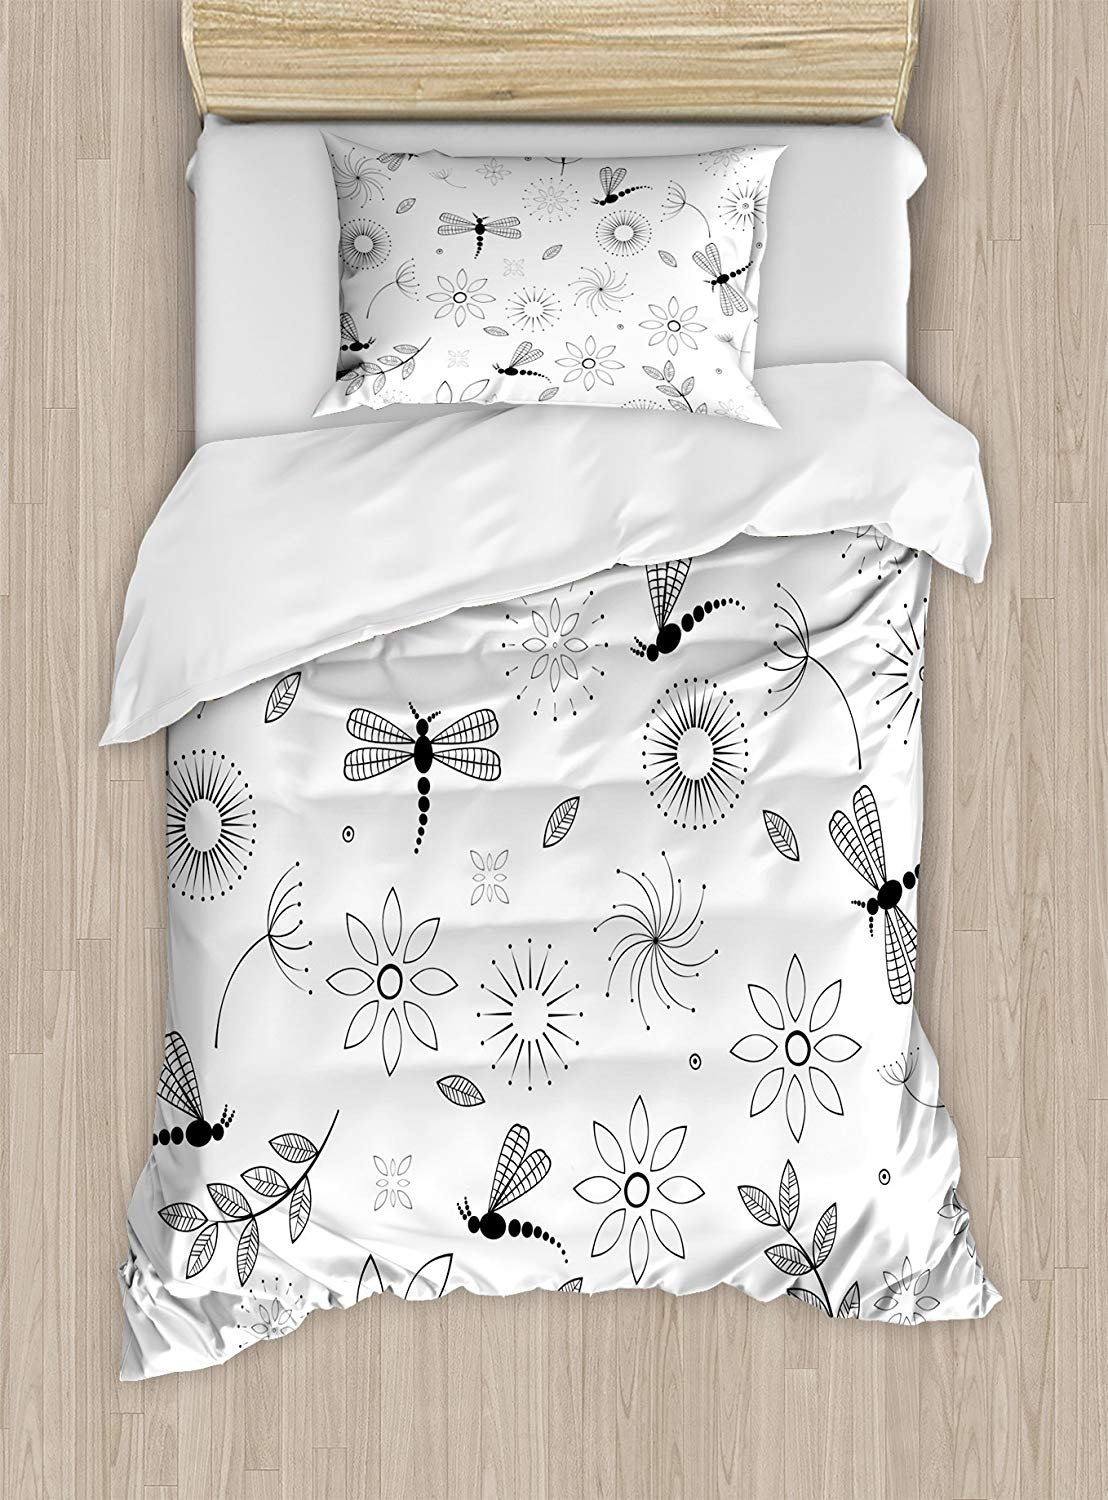 Twin XL Extra Long Bedding Set, Dragonfly Duvet Cover Set, Ethnic Bohem Inspired Flying Butterfly Like Bugs and Flowers Dandelion Image, Cosy House Collection 4 Piece Bedding Sets